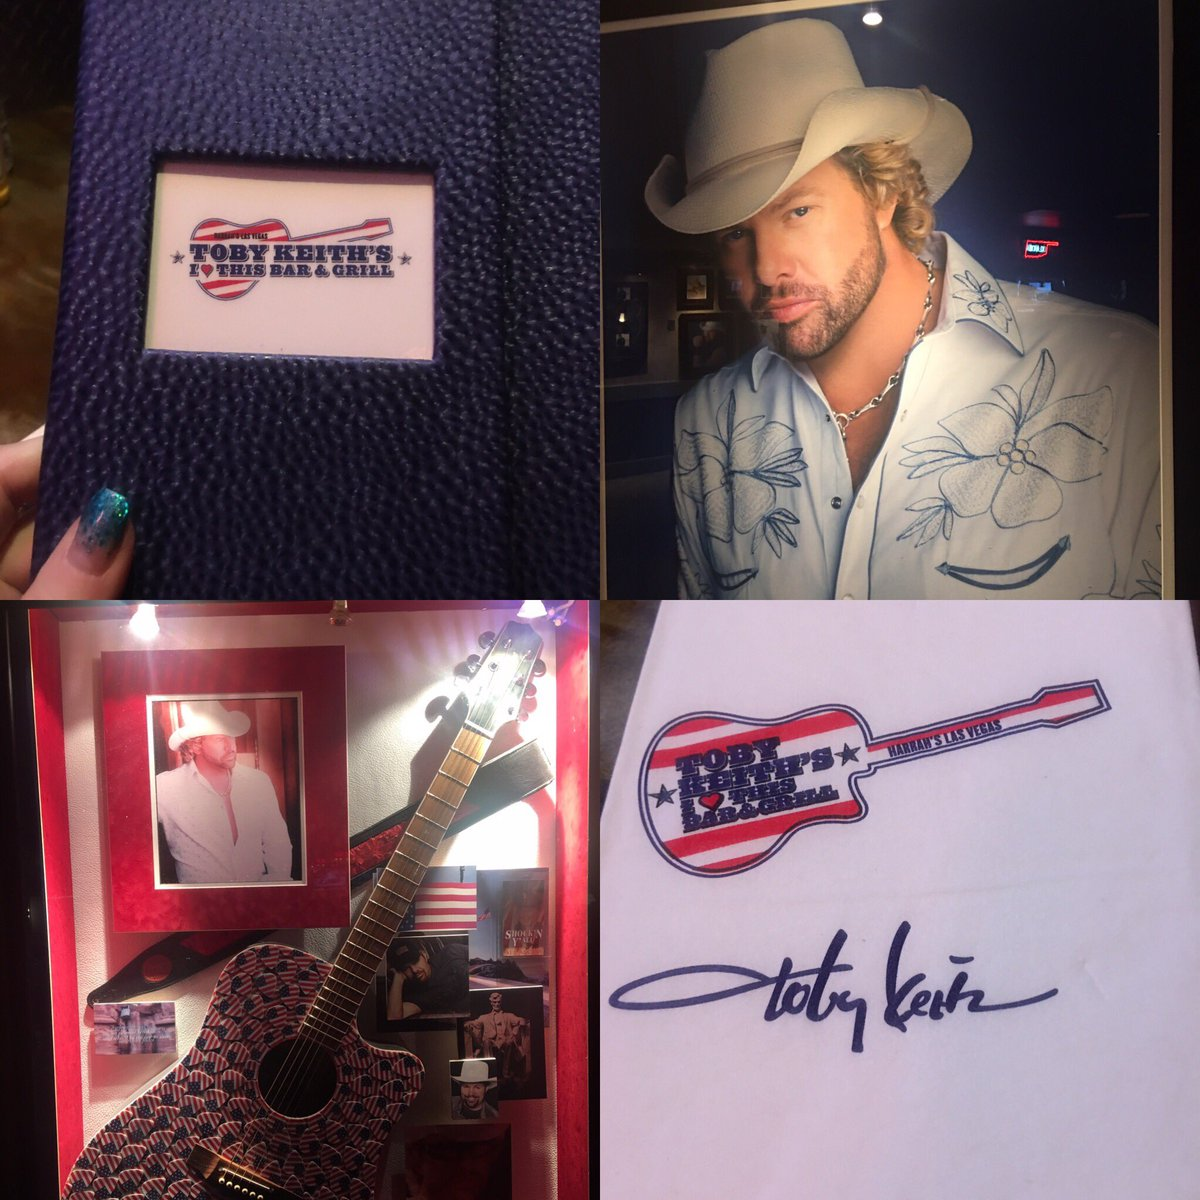 Check out Toby Keith's Bar & Grill in #Vegas 🎰 The sweet tea and fried pickles were great. Chicken fried steak and fried okra were fabulous! 🔴⚪️🔵 Love Southern Food! 🤠 @tobykeith @HarrahsVegas @TobyKeithBar #LasVegas #TobyKeith @LuckysLasVegas @VitalVegas @LasVegasLocally – at Harrah's Hotel & Casino